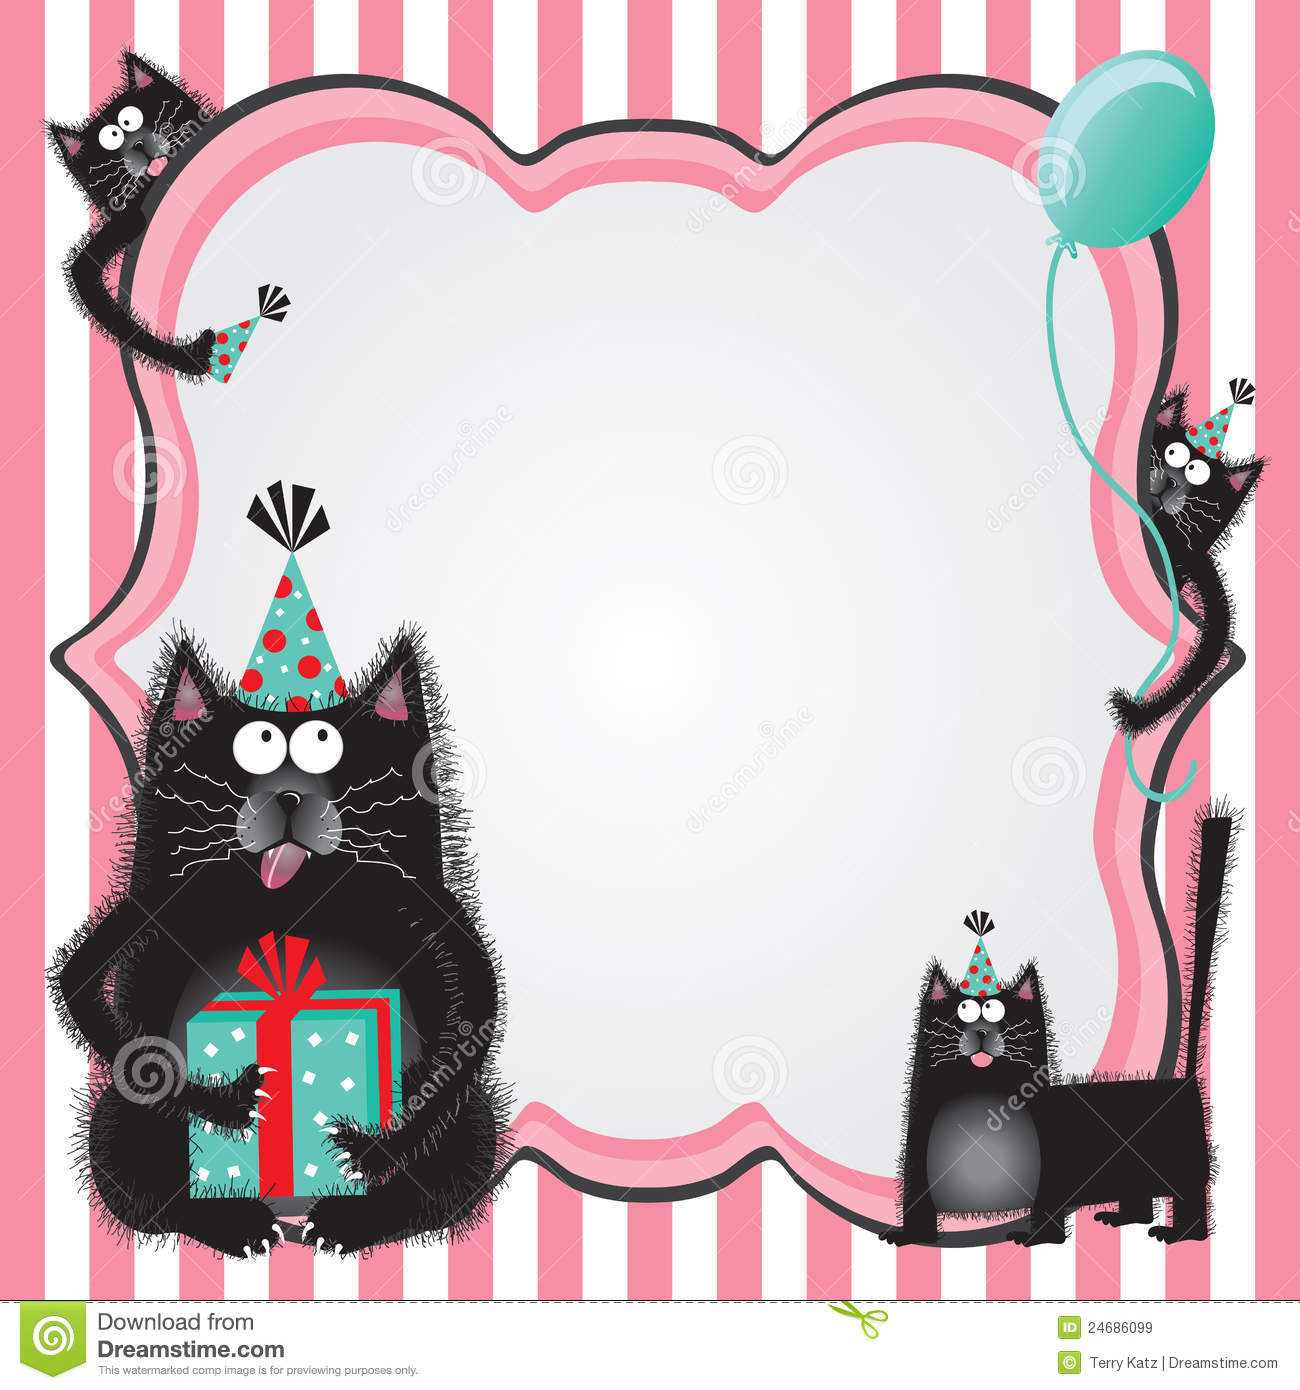 Kitty Cat Birthday Party Invitation Stock Vector - Illustration of ...